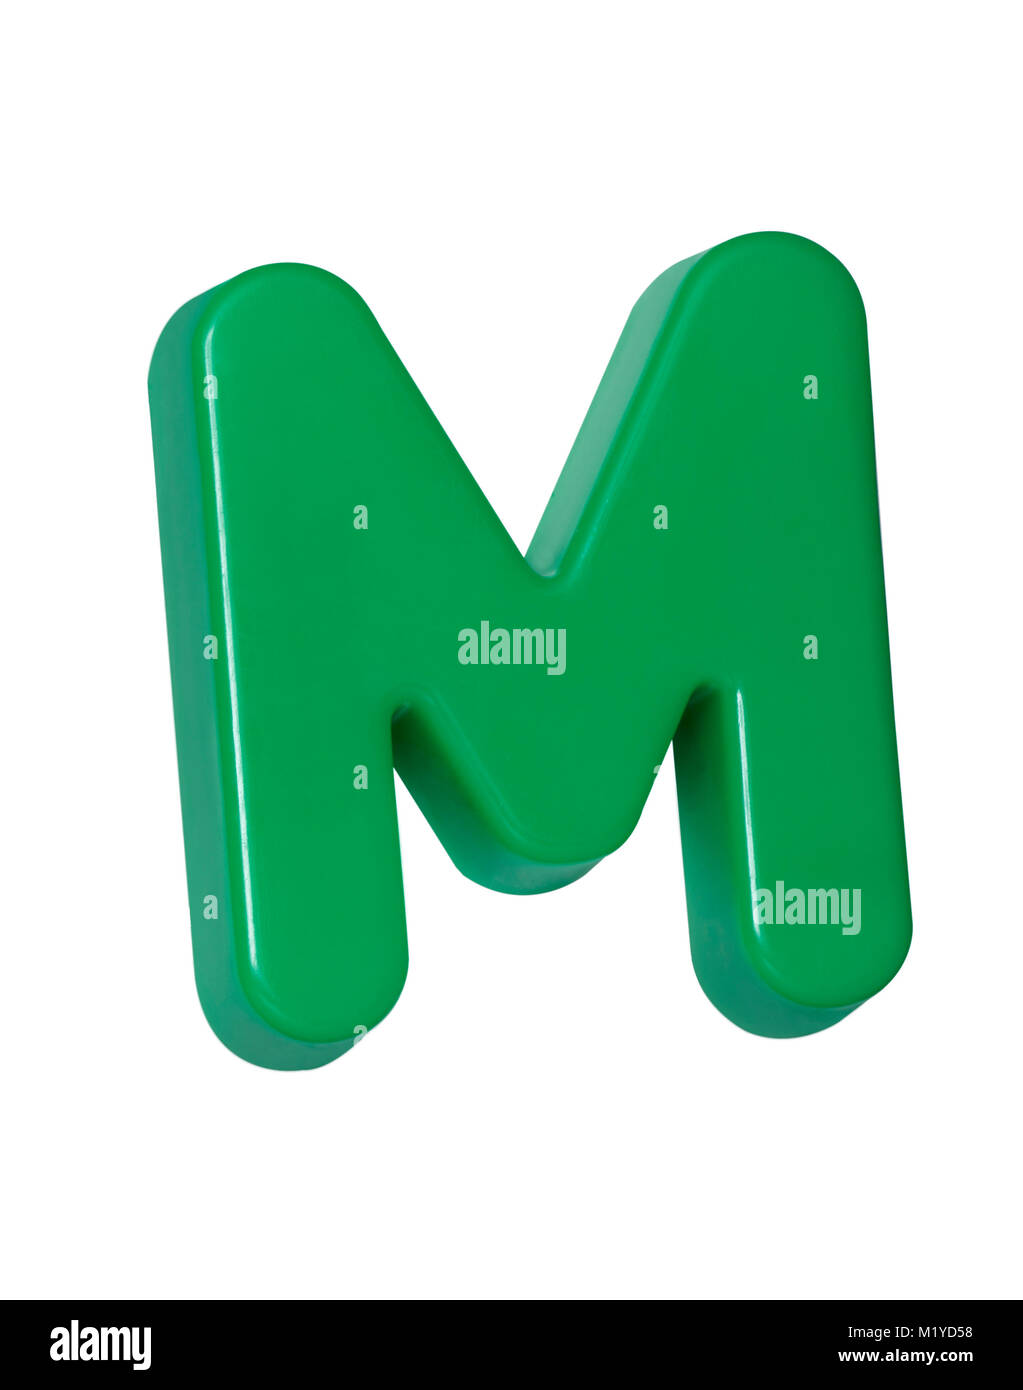 A cut out shot of a green plastic letter 'M' - Stock Image